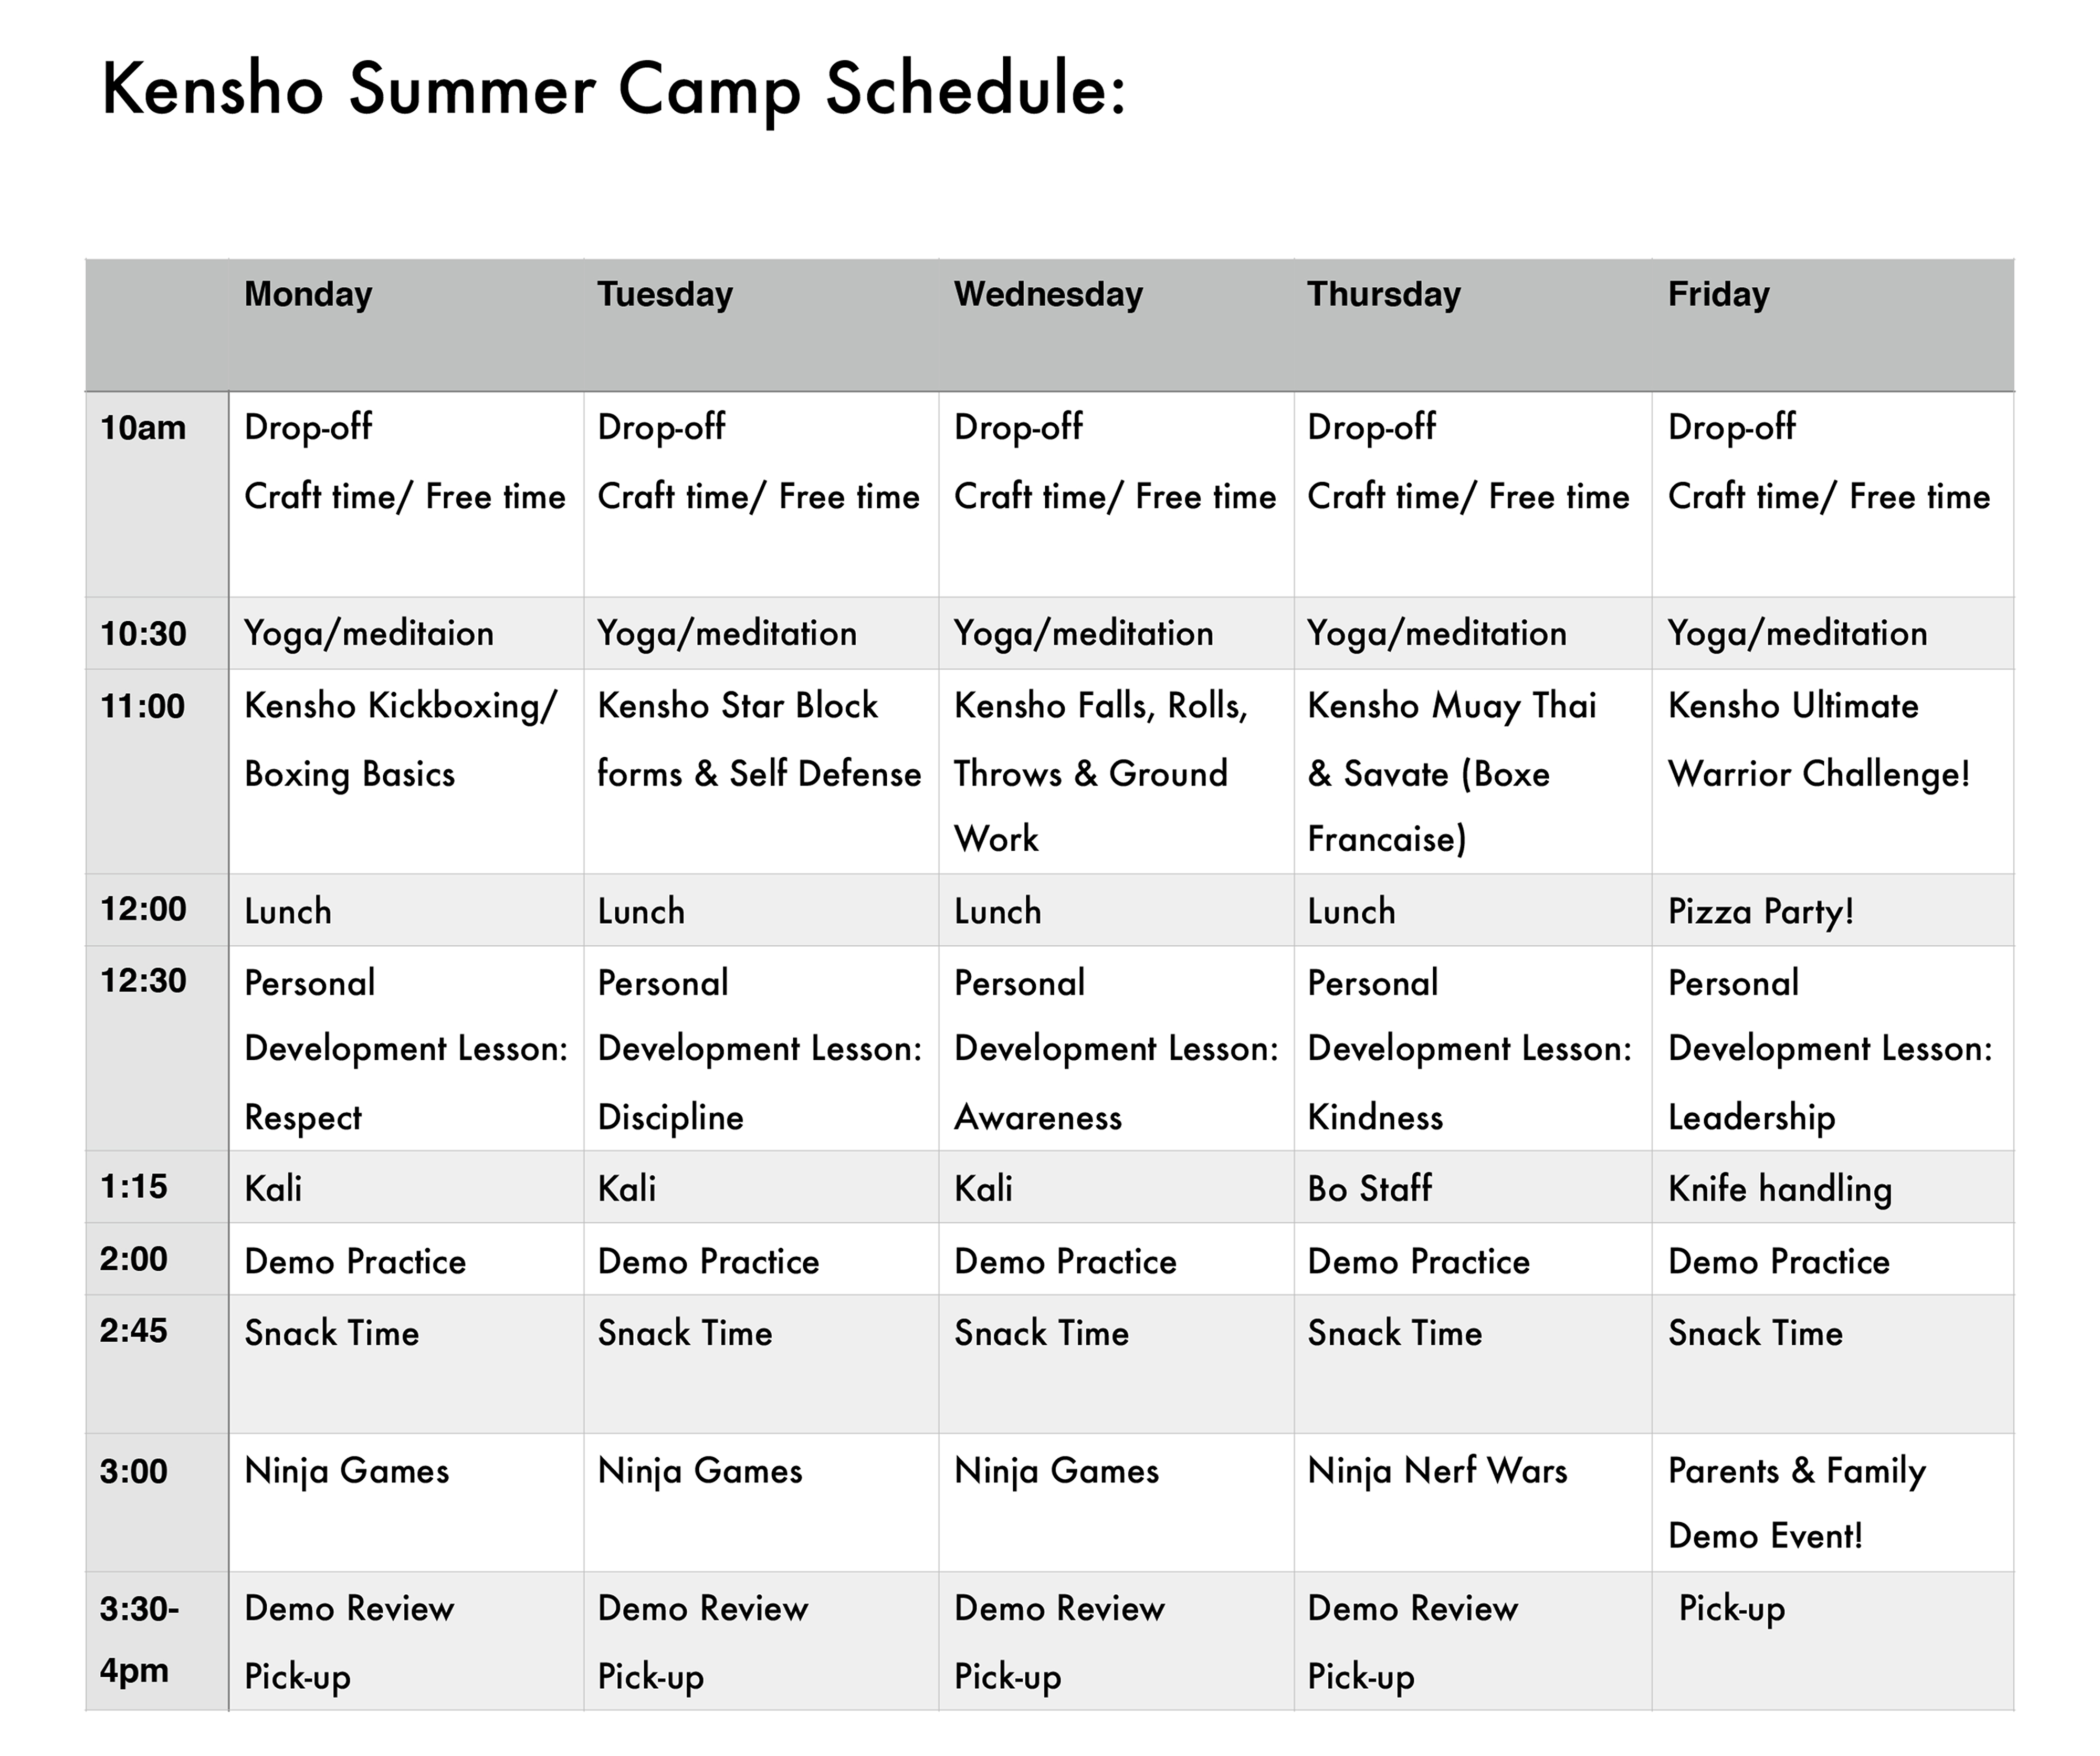 Kensho CAMP Schedule